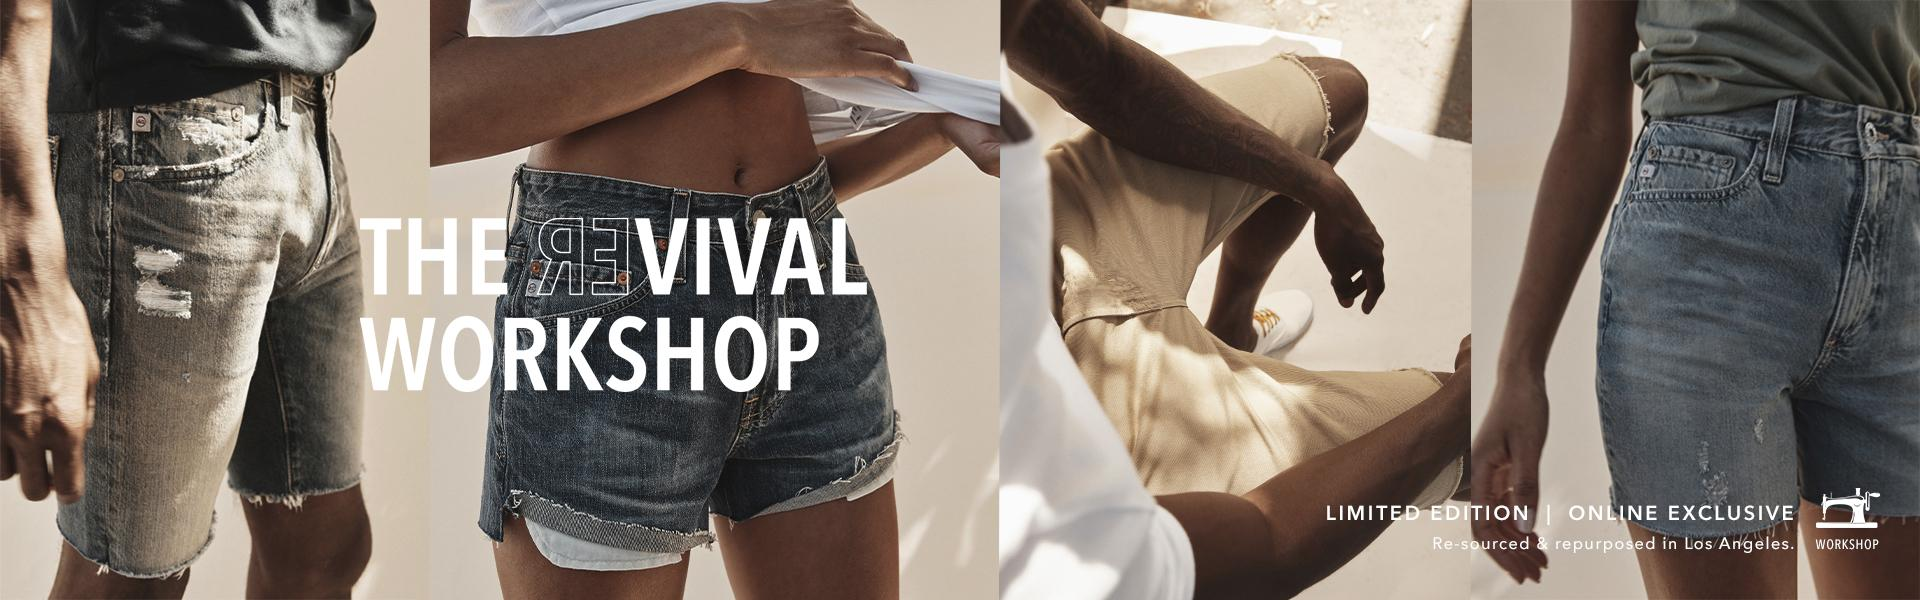 The Revival Workshop: A limited-edition online exclusive